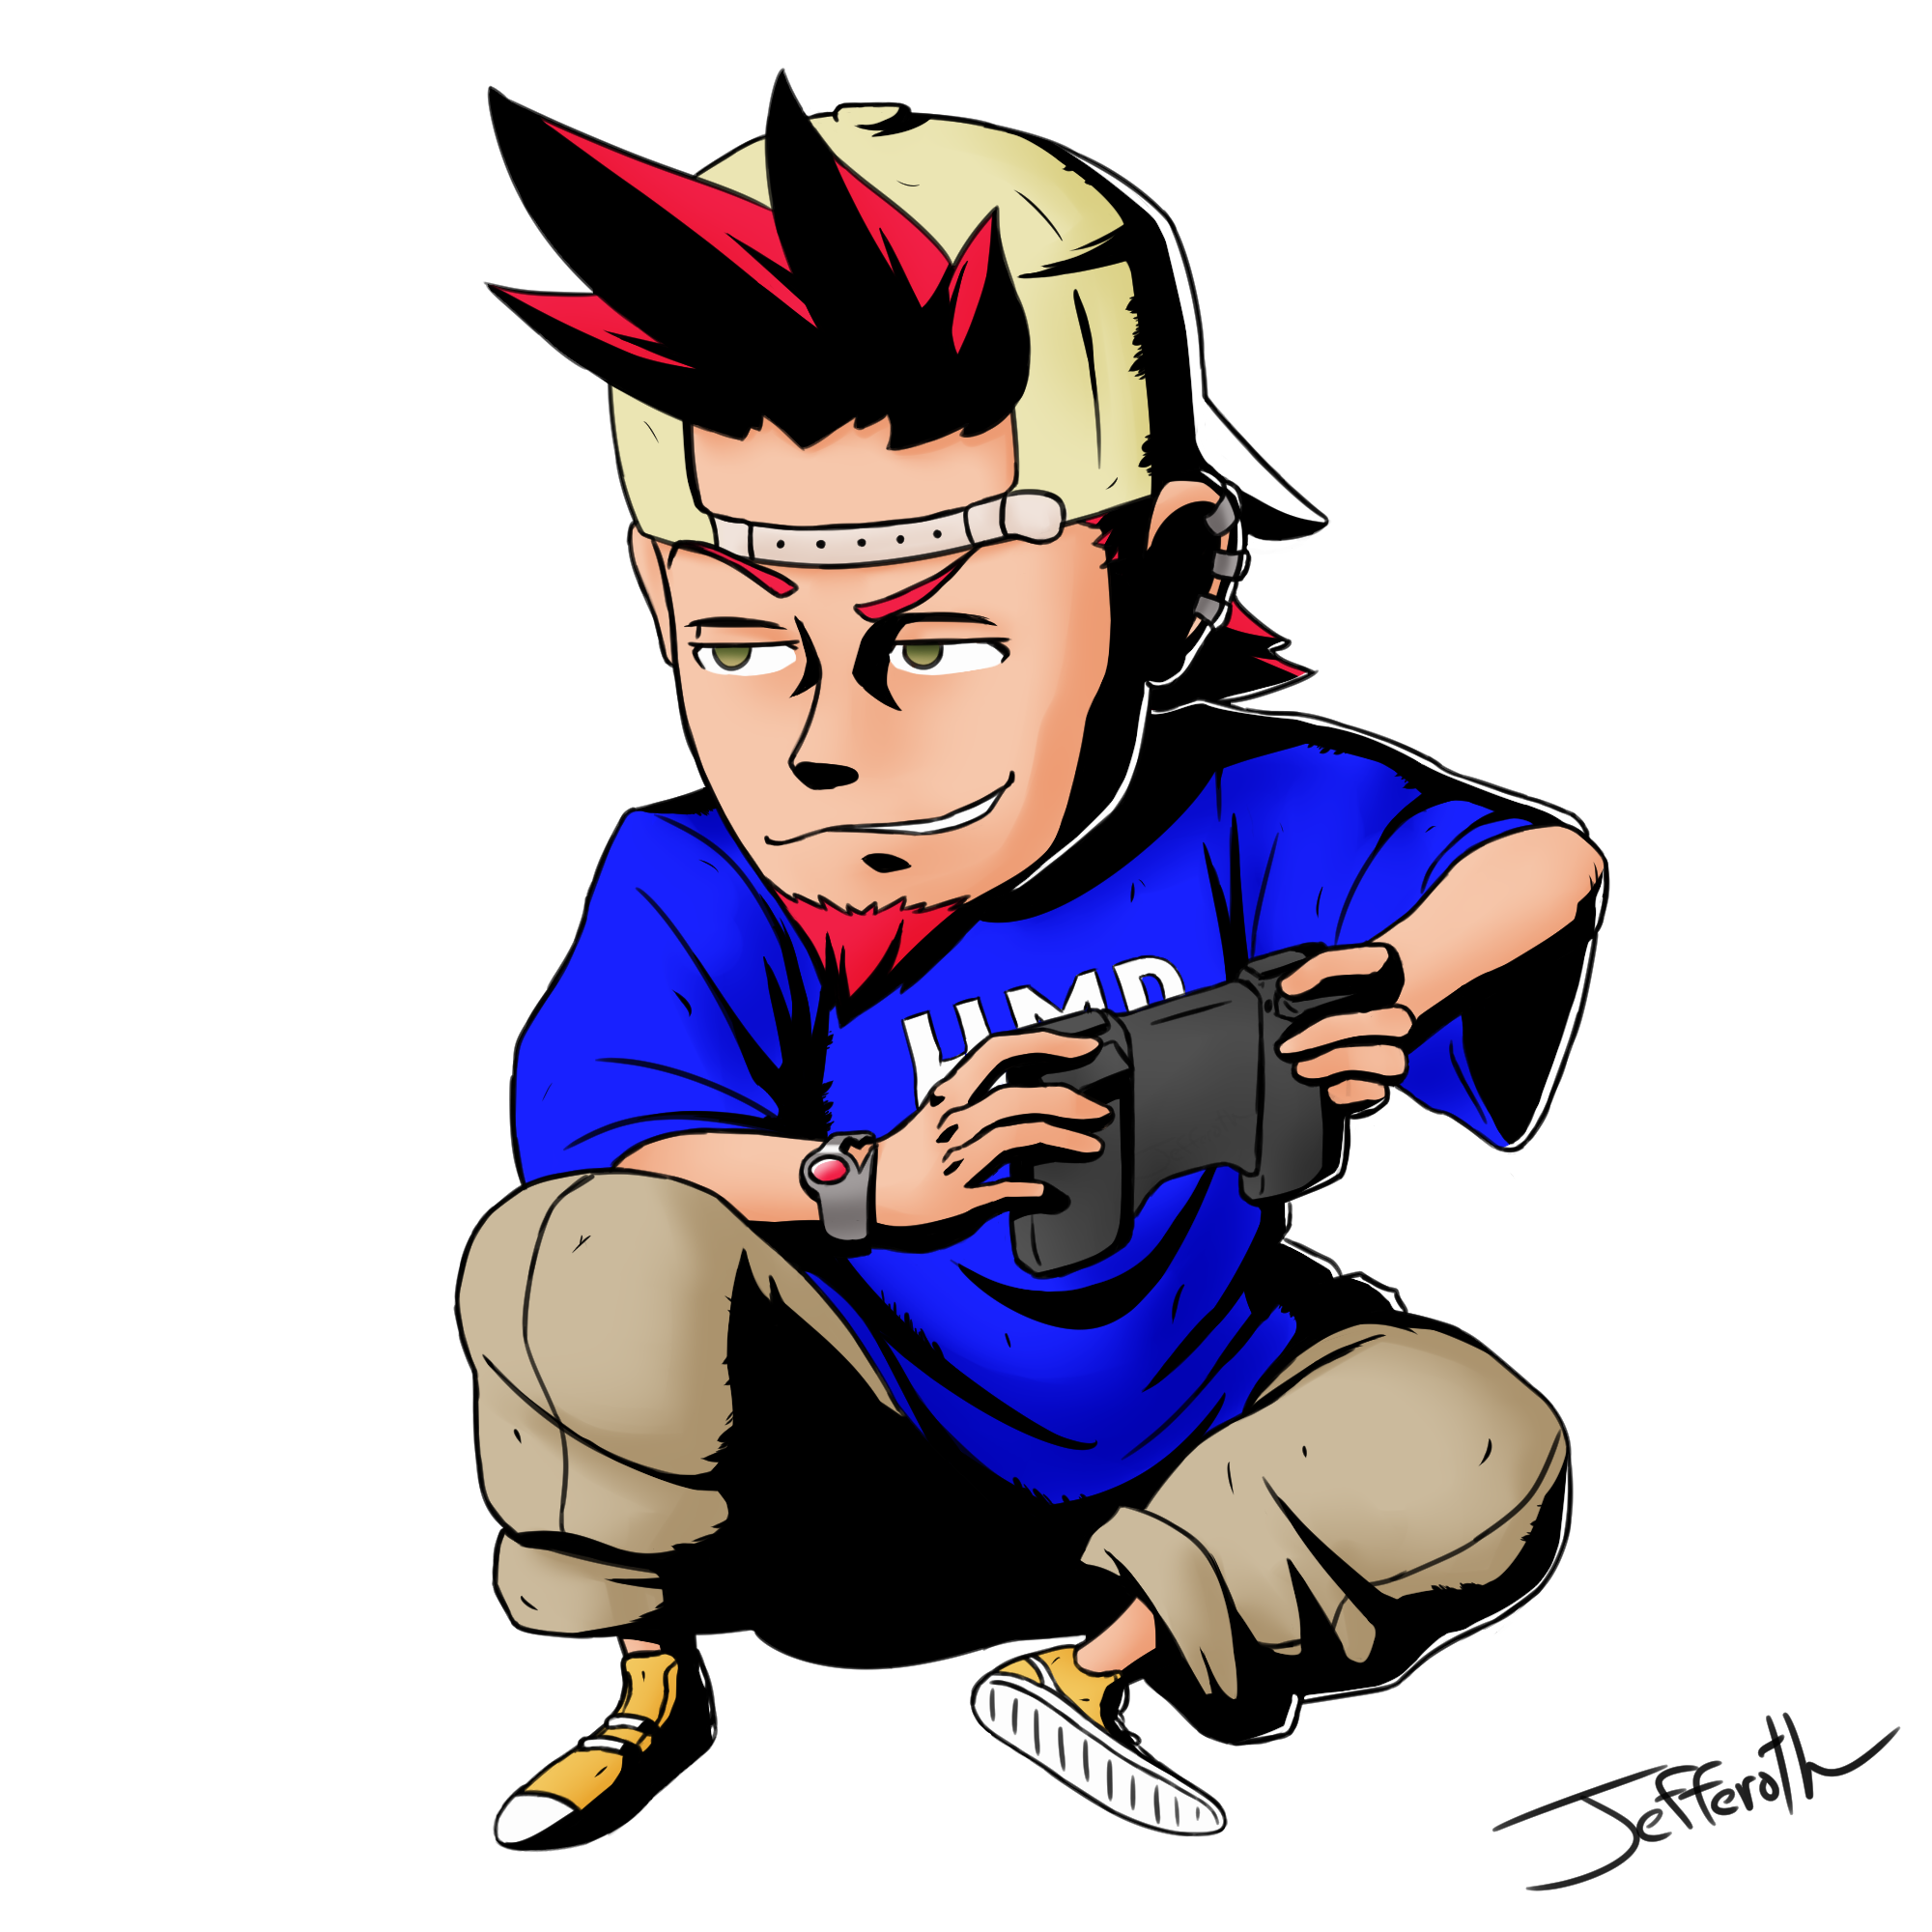 [Drawthread] Viewtiful Joe